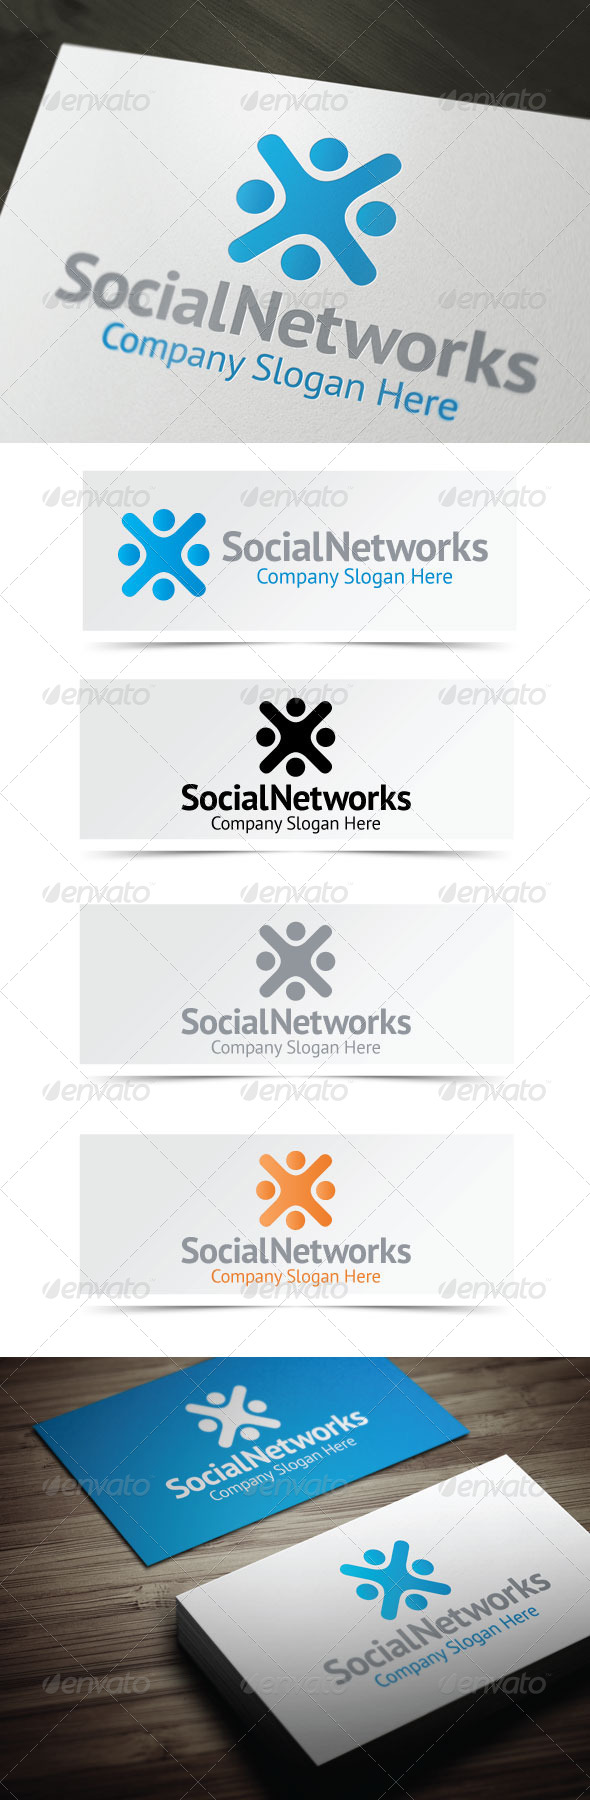 GraphicRiver Social Networks 4079656